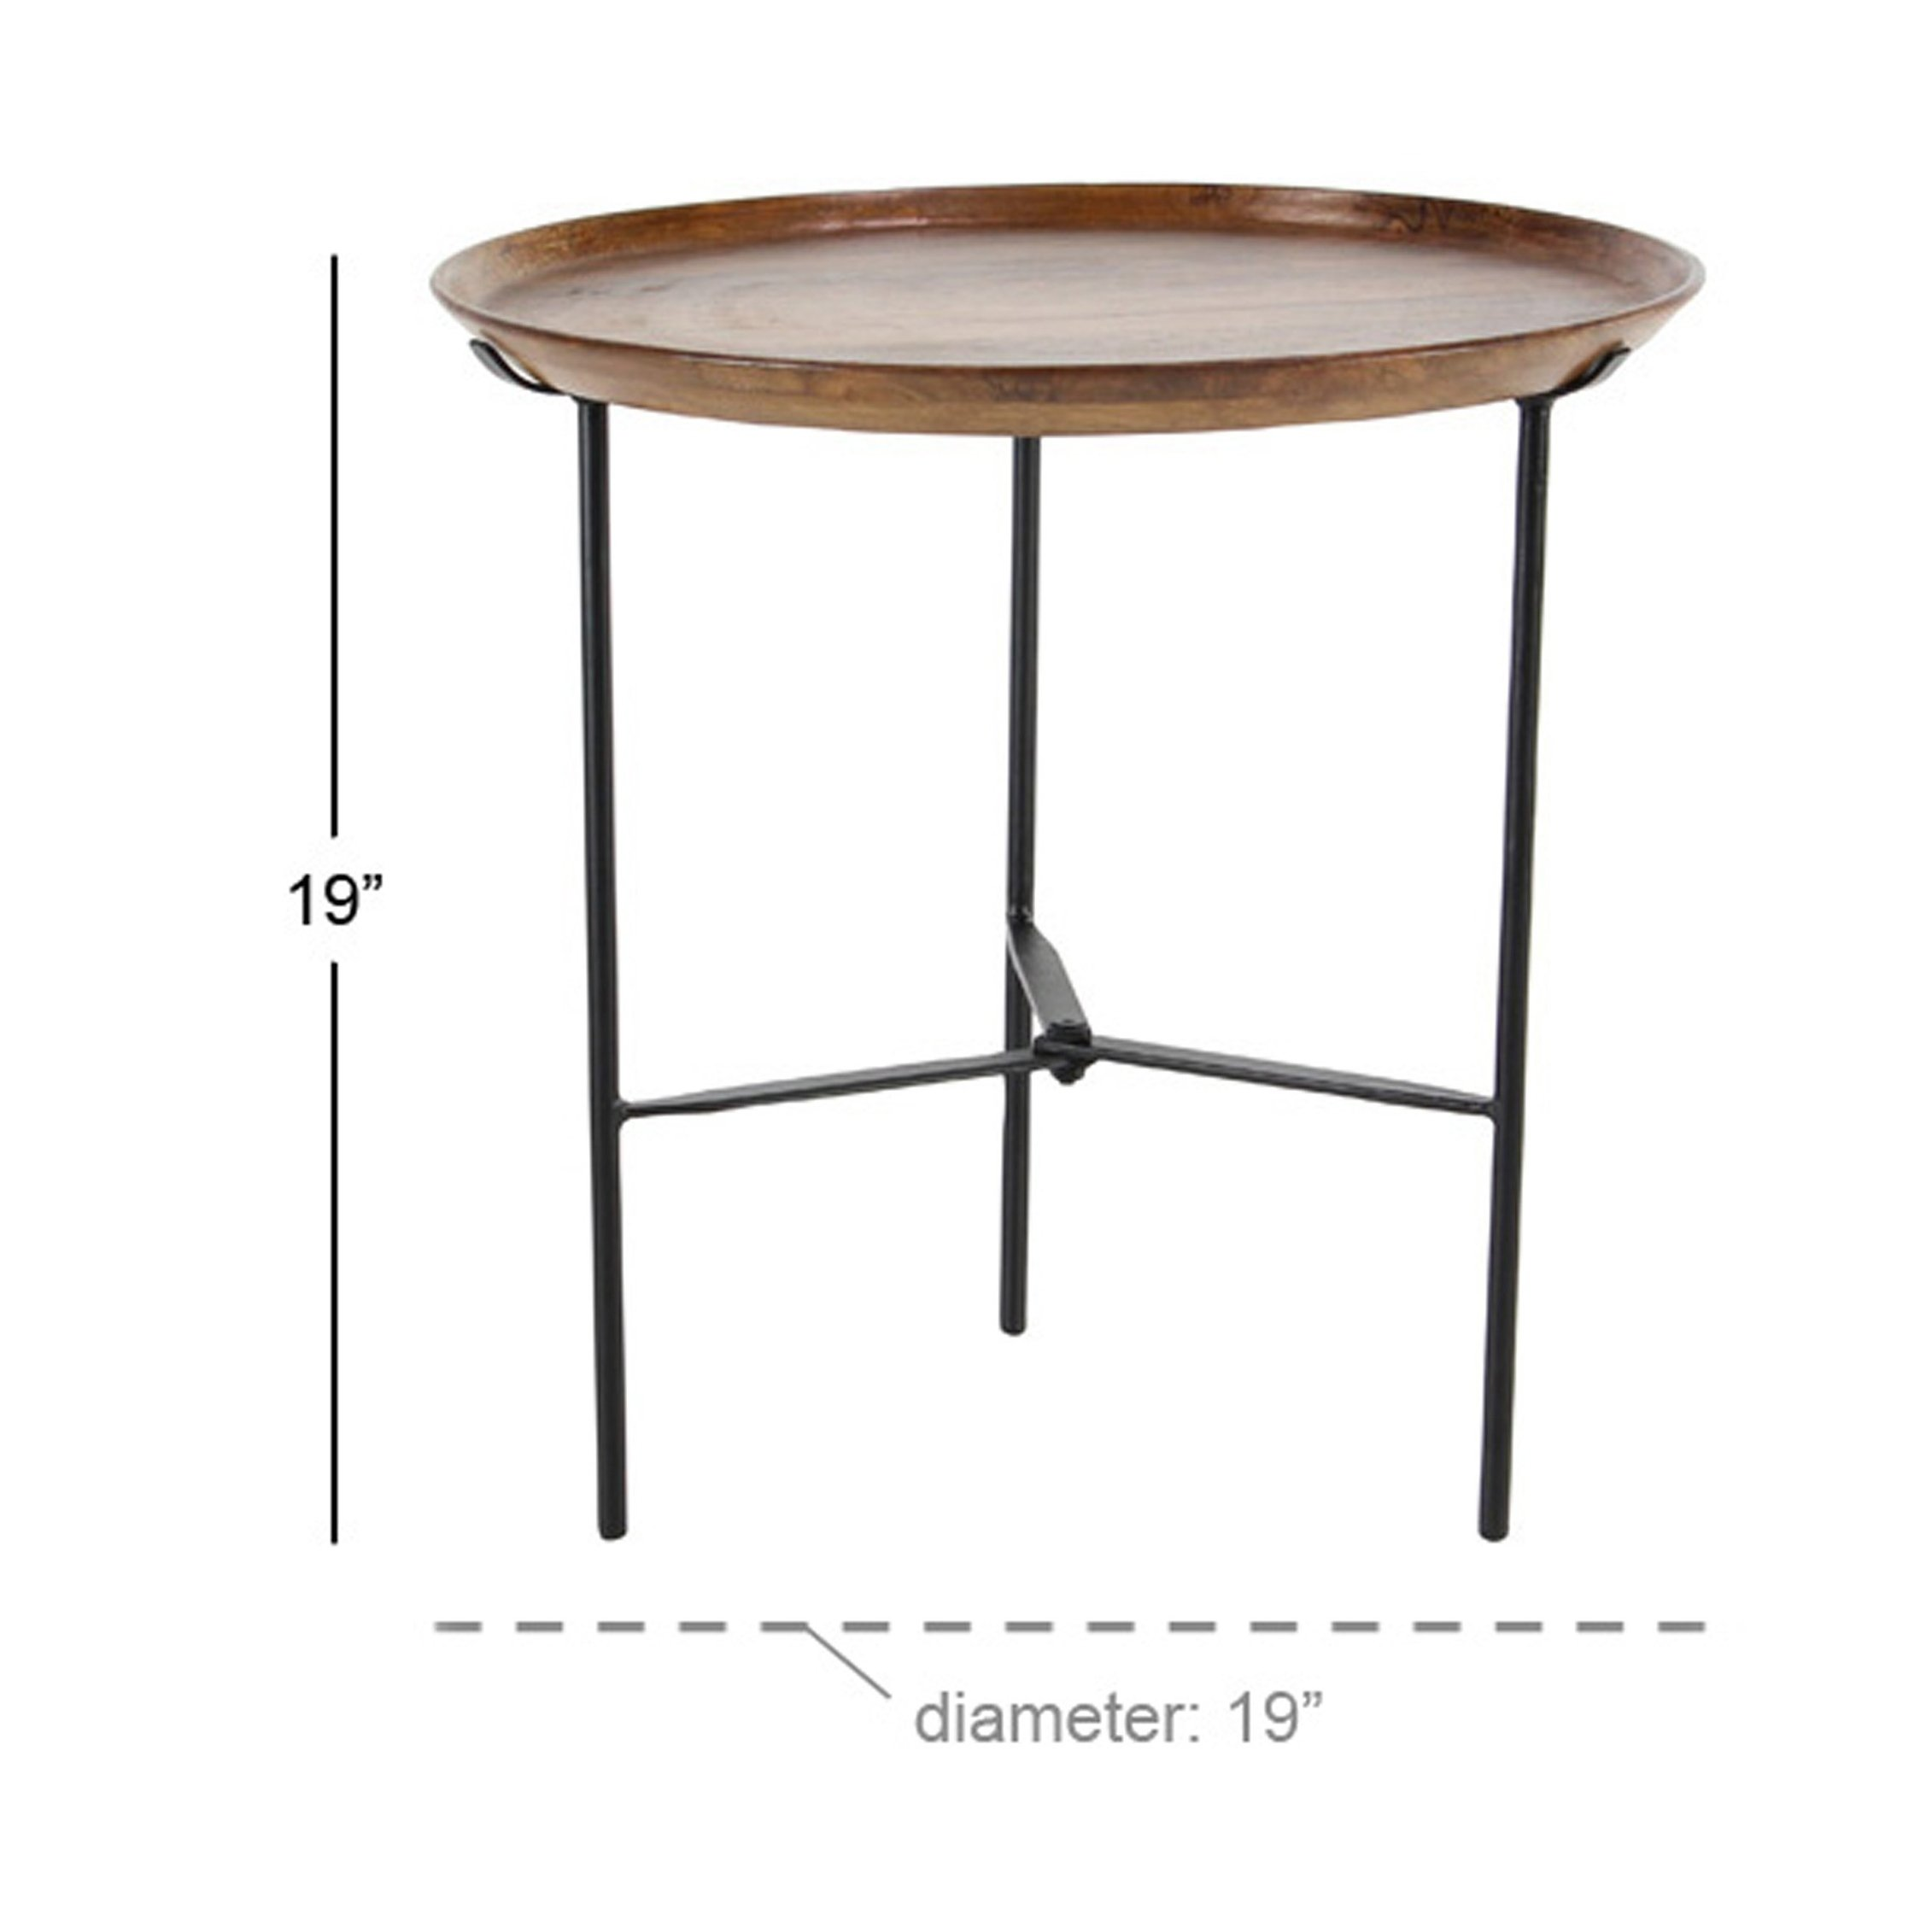 rustic inch round wood and iron accent table free shipping today best coffee designs square target patio loveseat cover desk chairs leather furniture large white bedside entry for